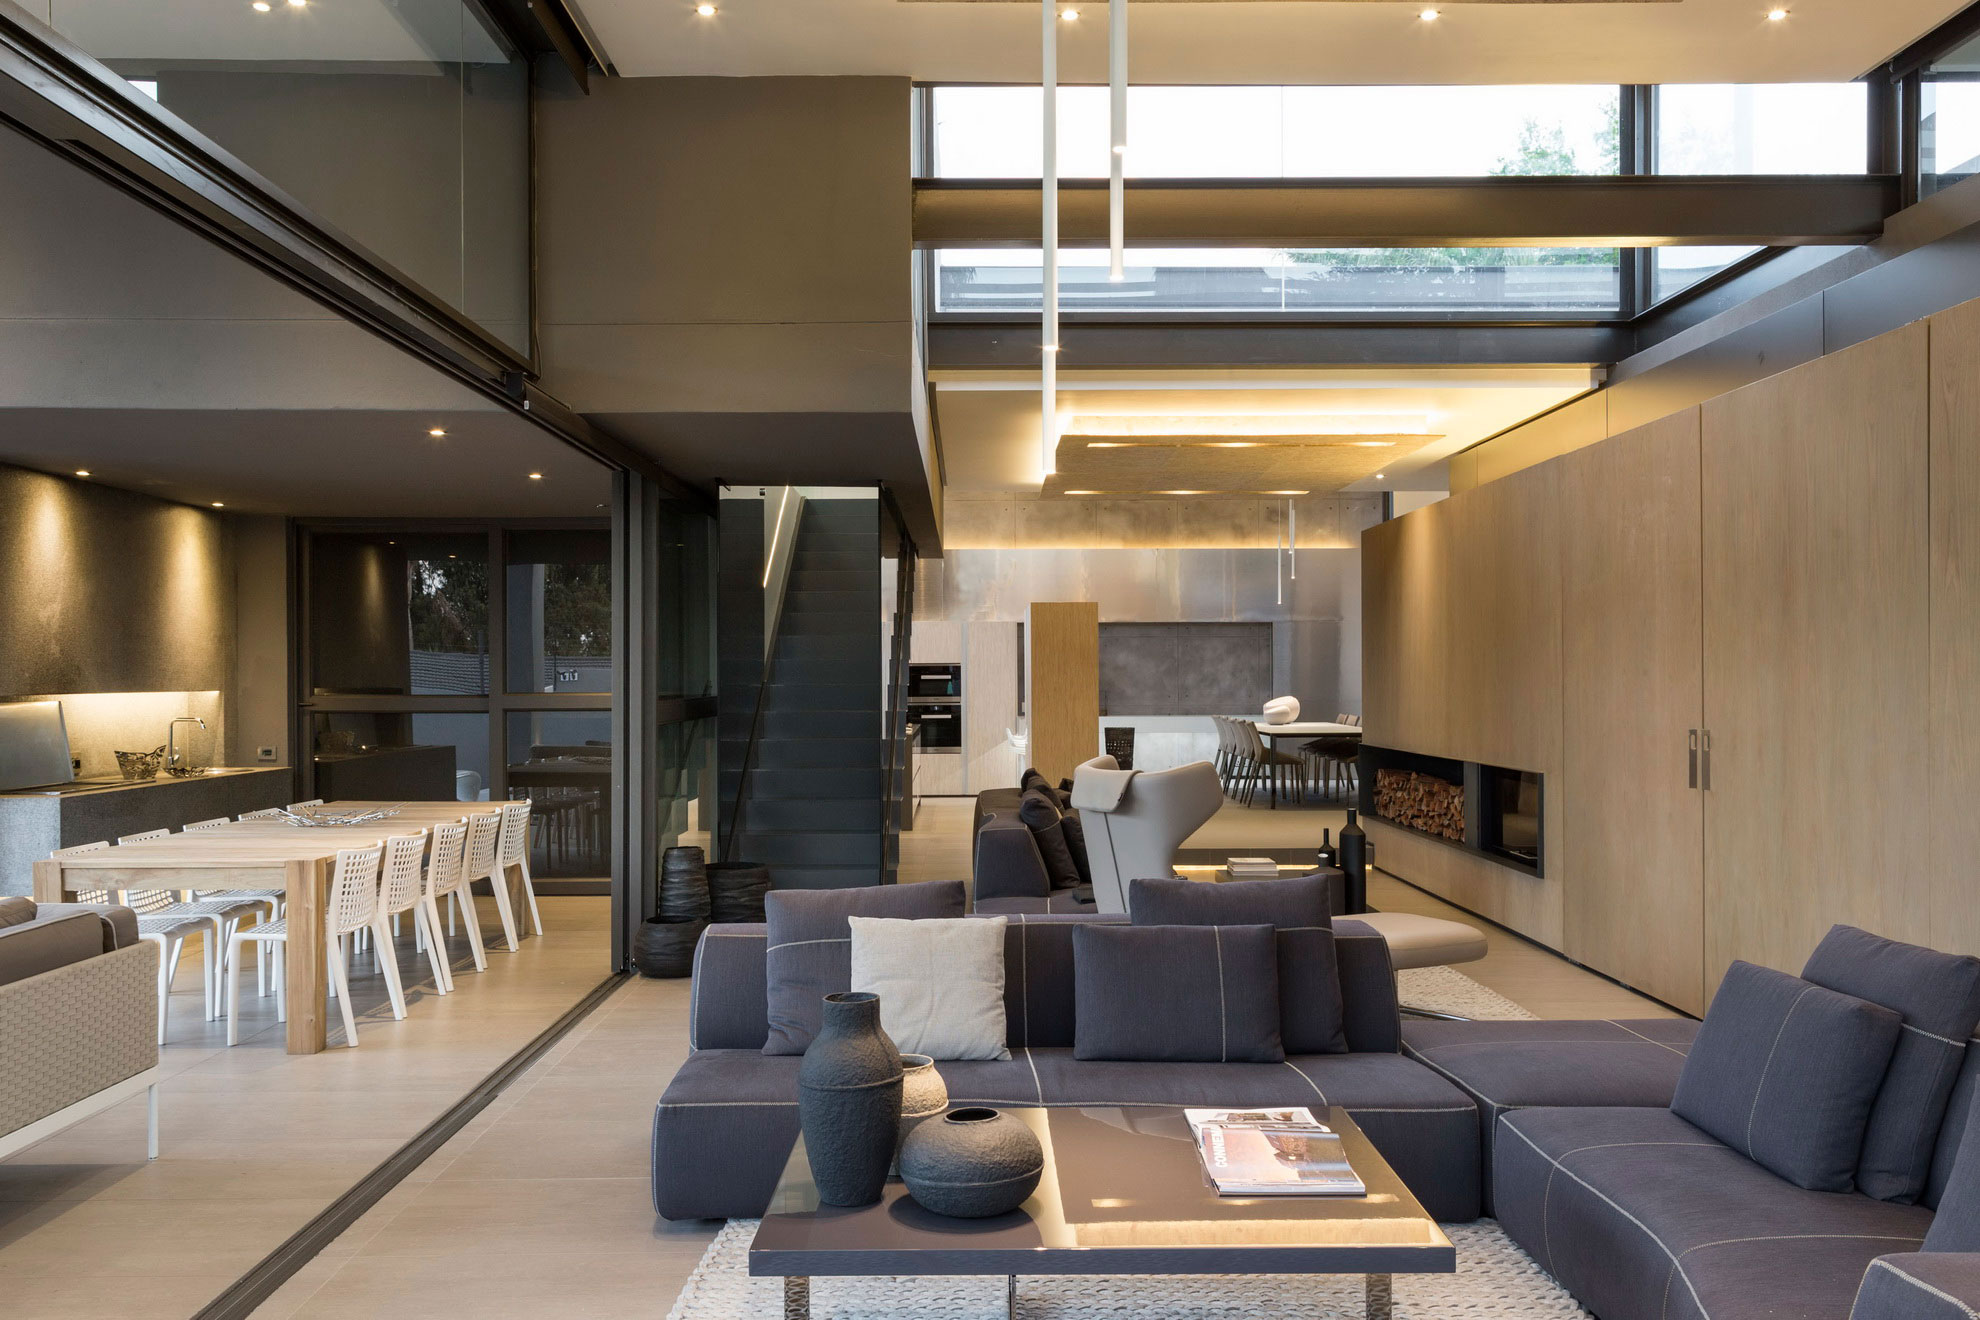 House Sar by Nico van der Meulen Architects